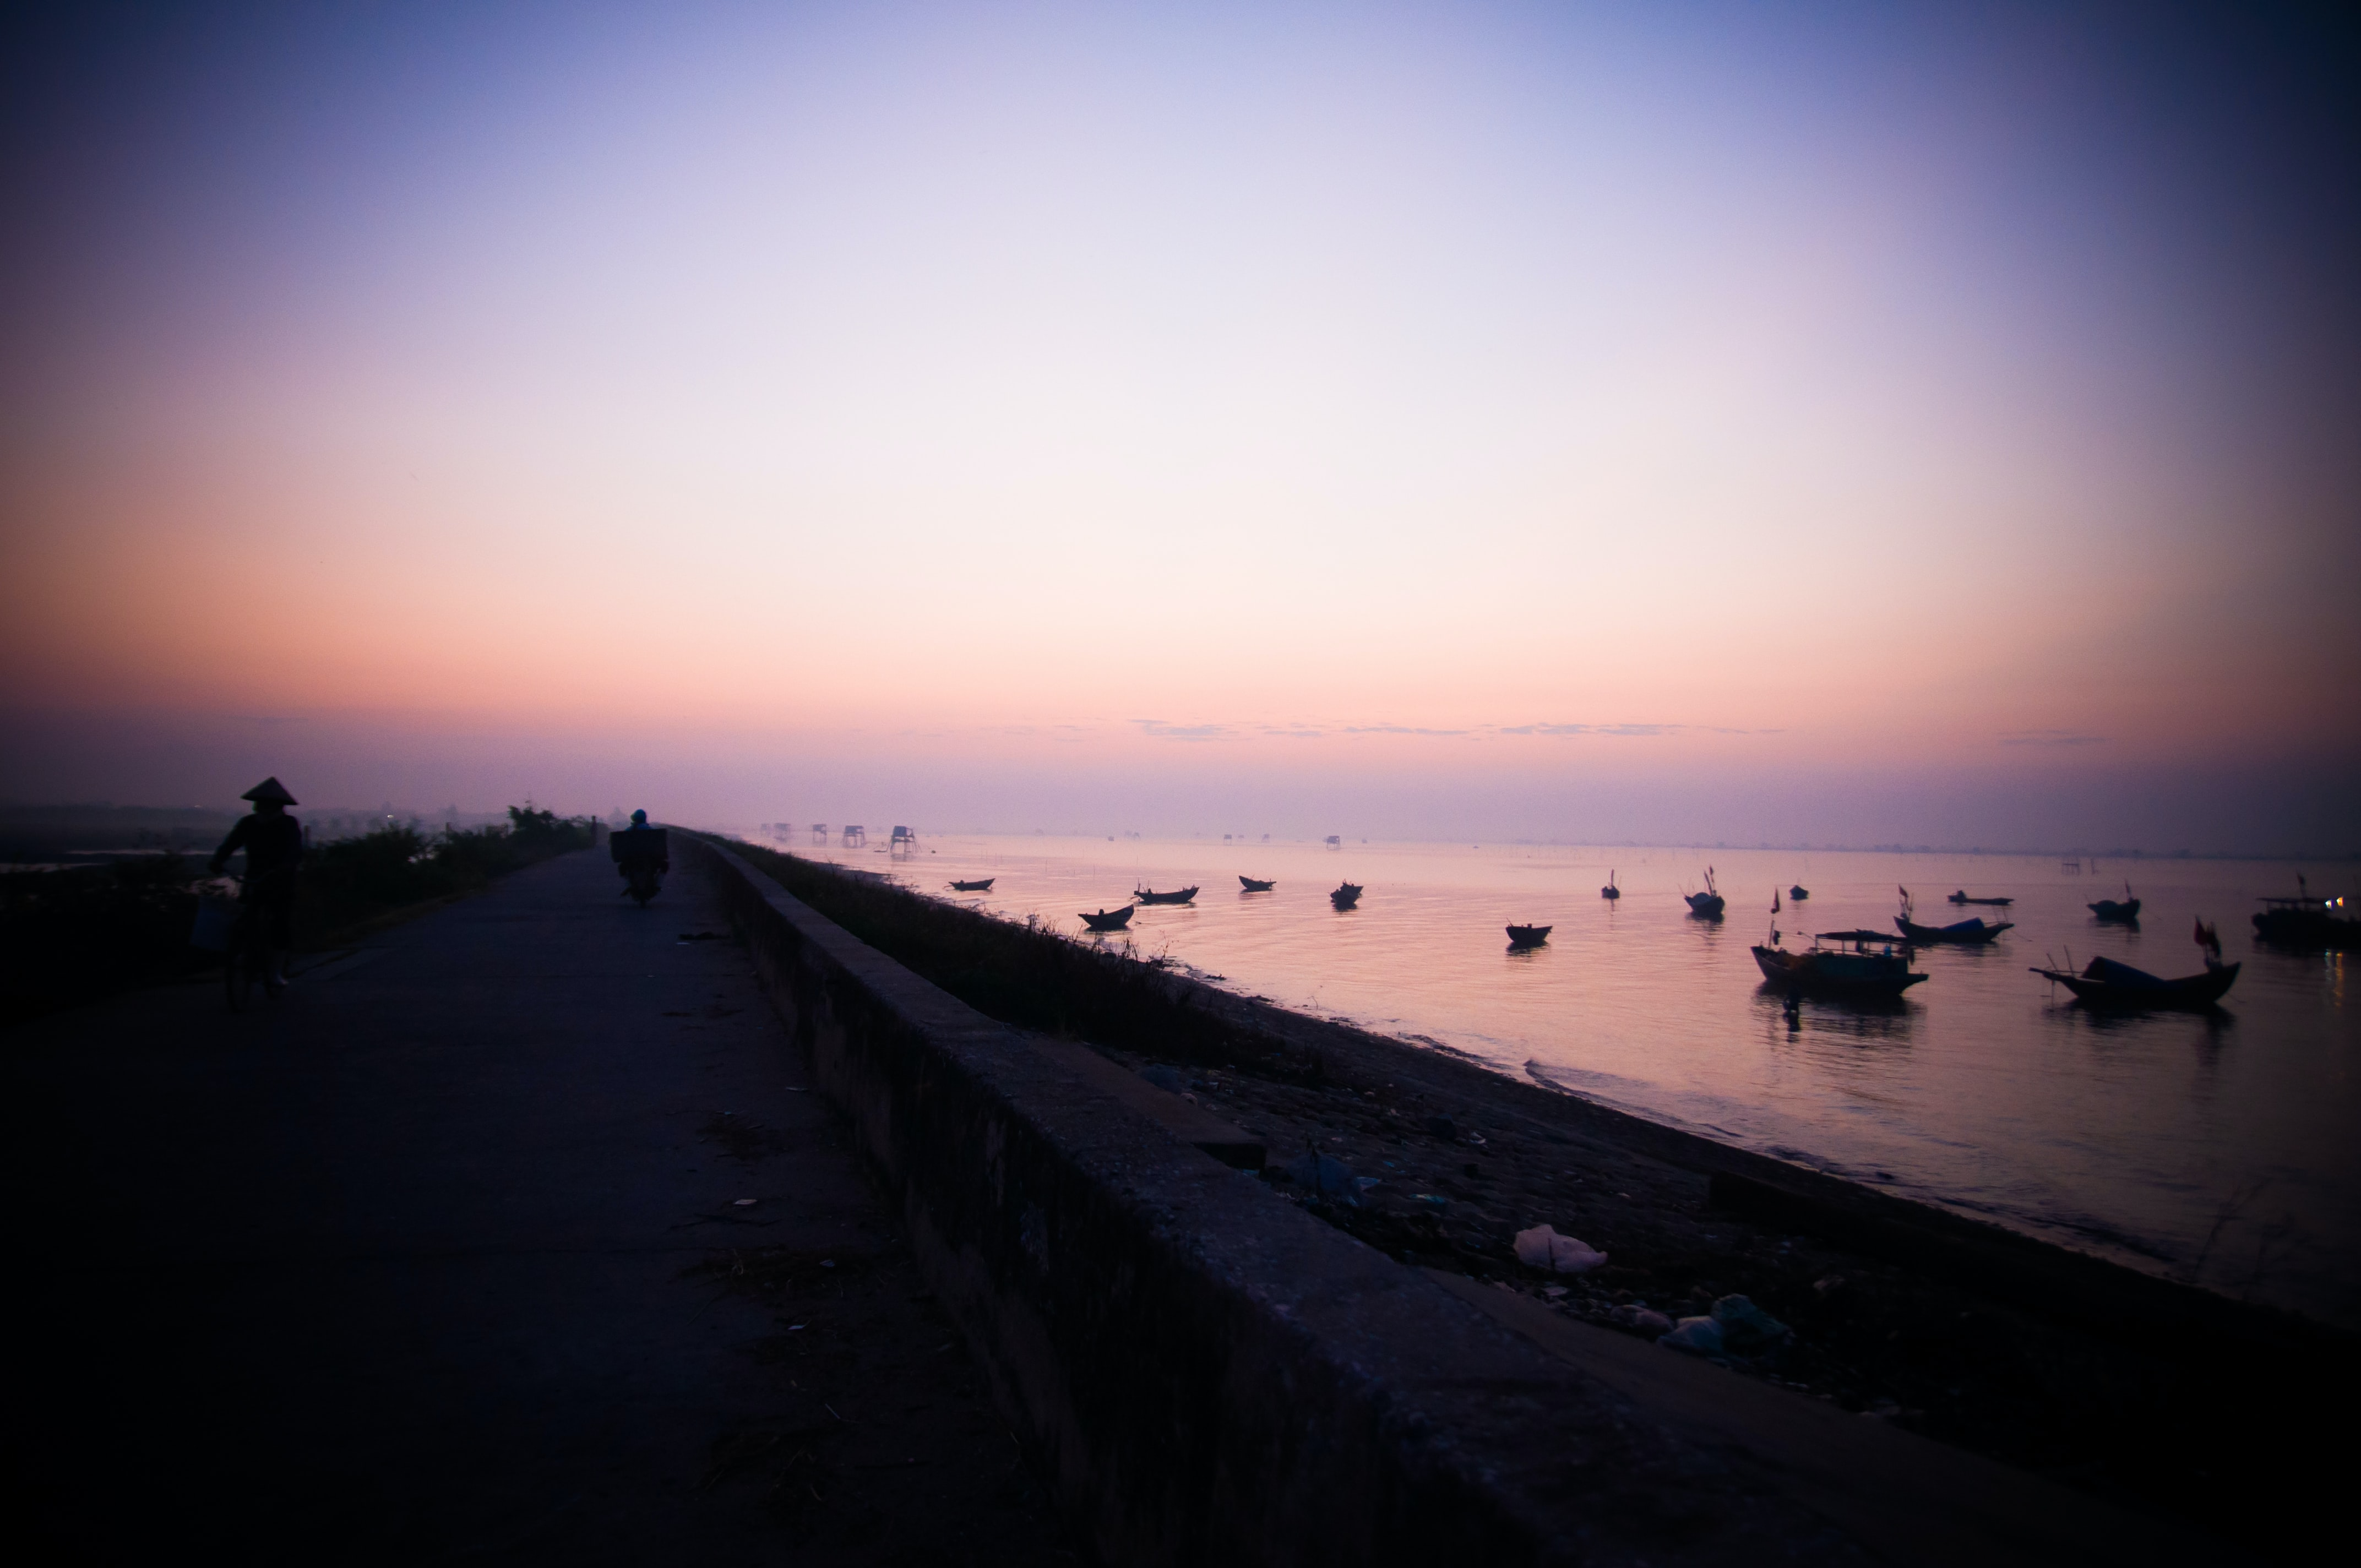 silhouette of boats on shore